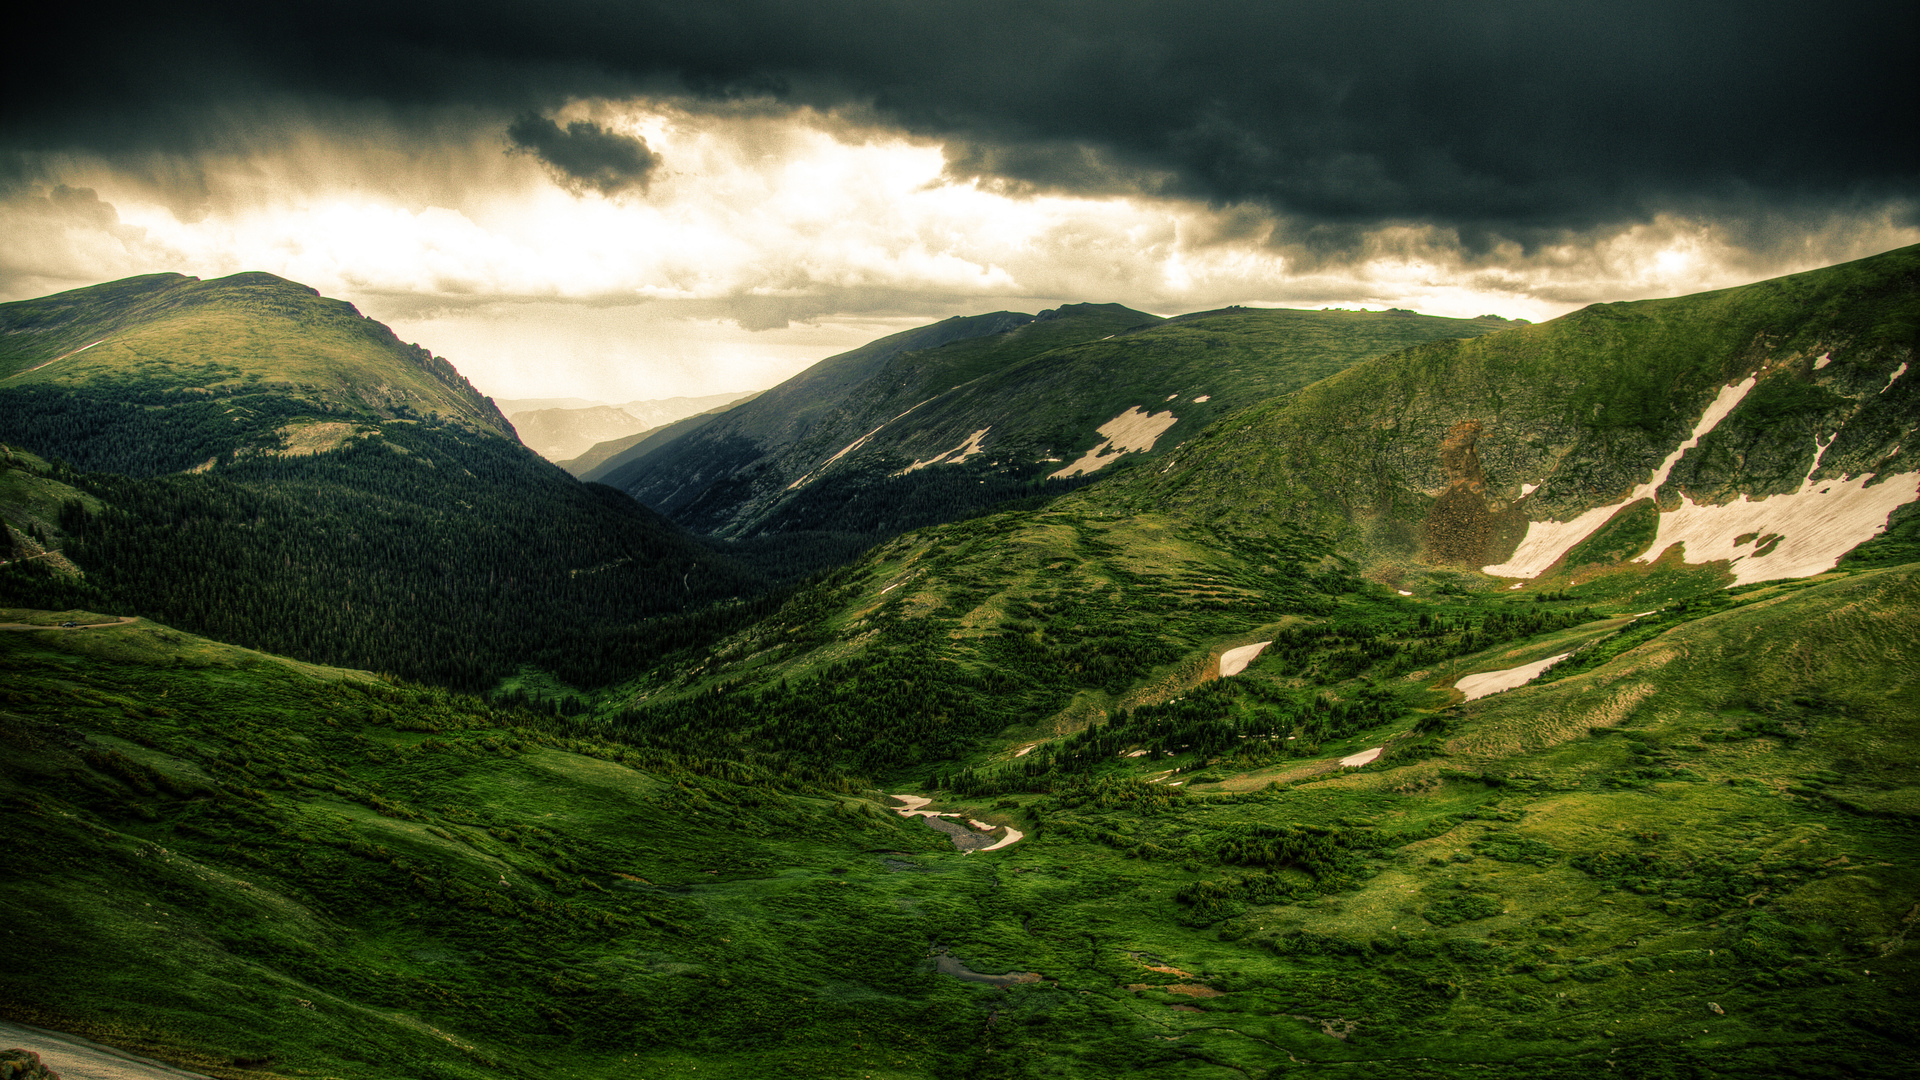 storm in mountains 1920x1080 wallpaper - photo #17